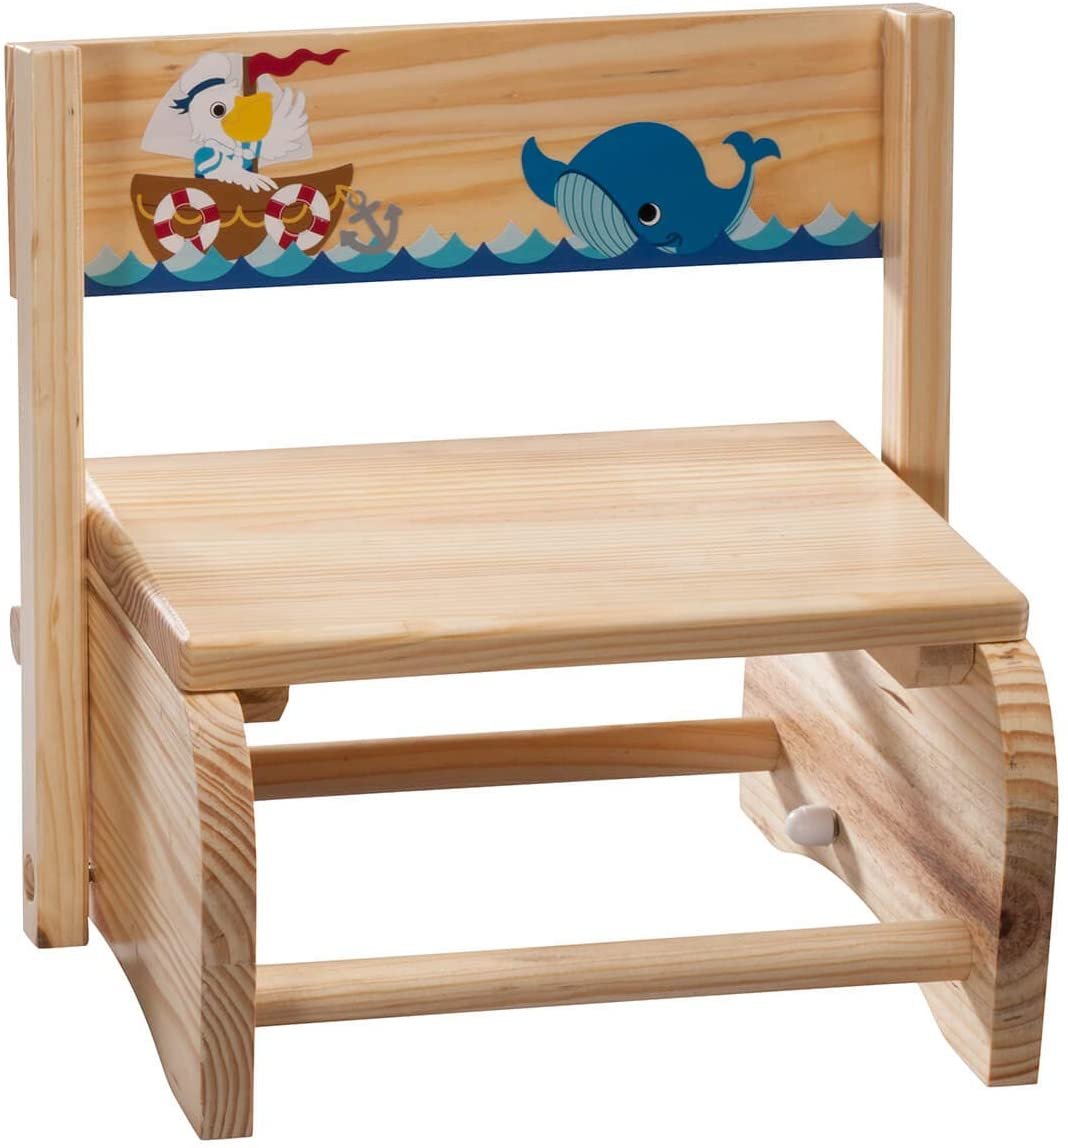 Fox Valley Traders 2-in-1 Children's Step Stool and Chair, Ocean Design